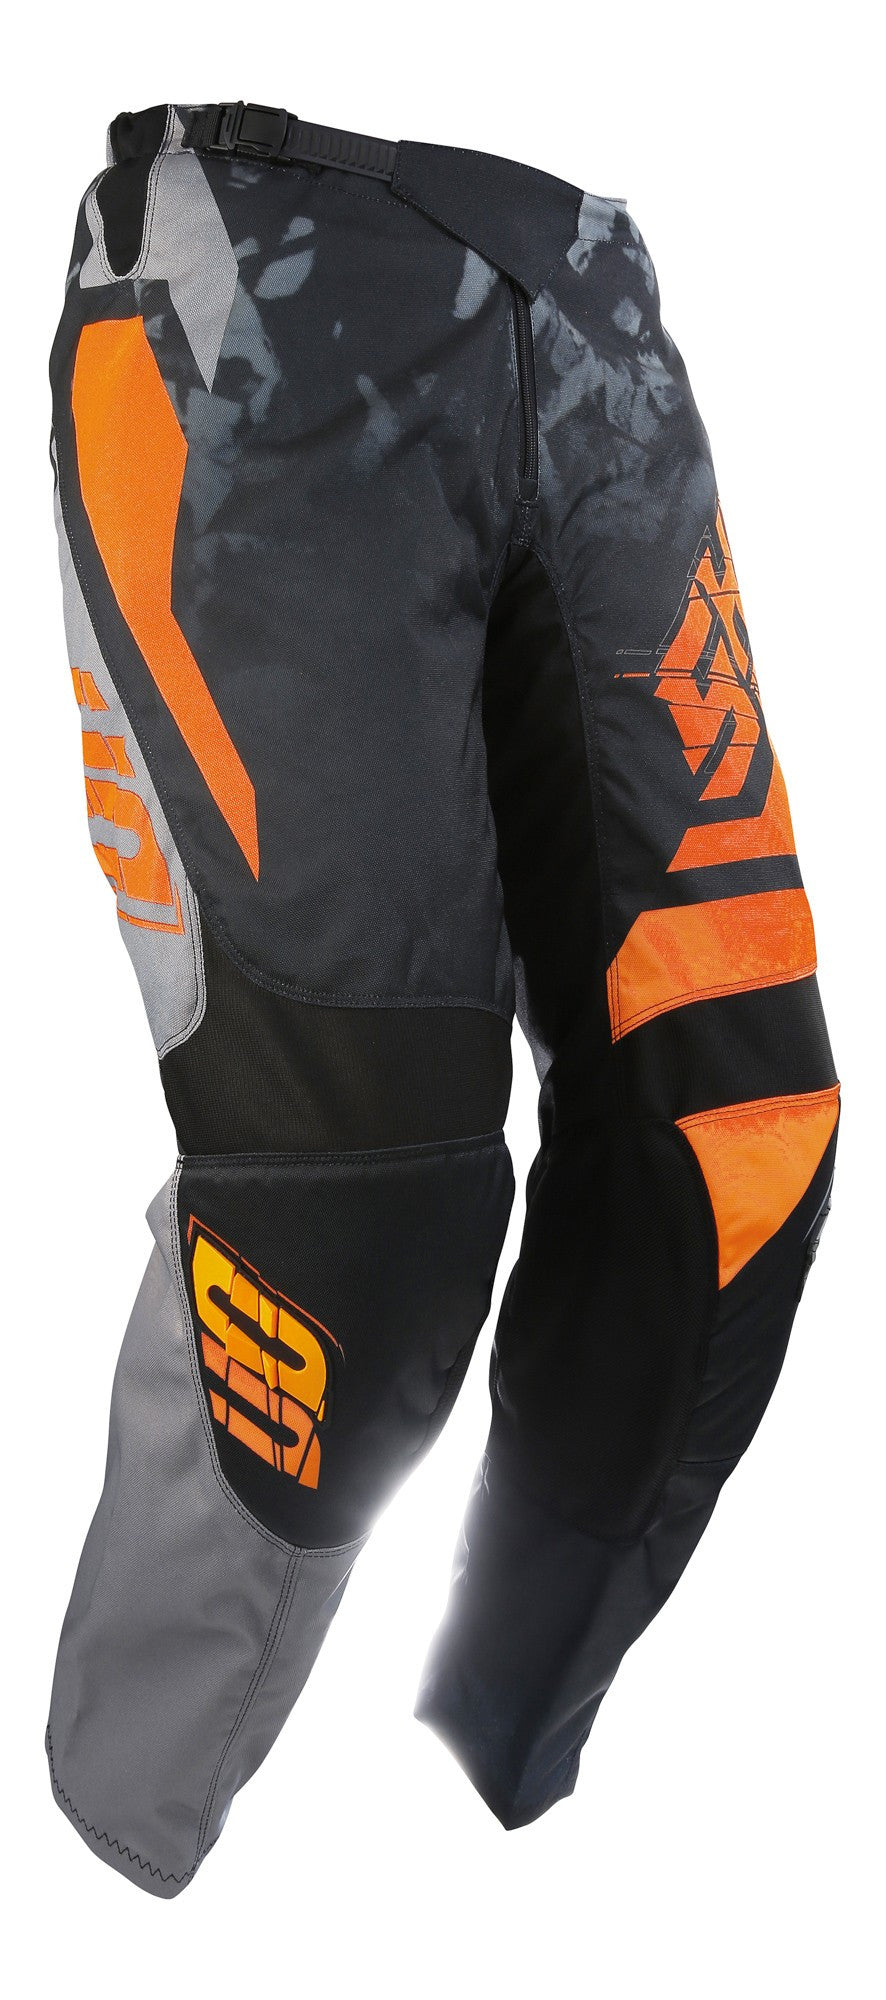 Kit Pants Shot Devo Squad - - Grey Orange Neon 30in